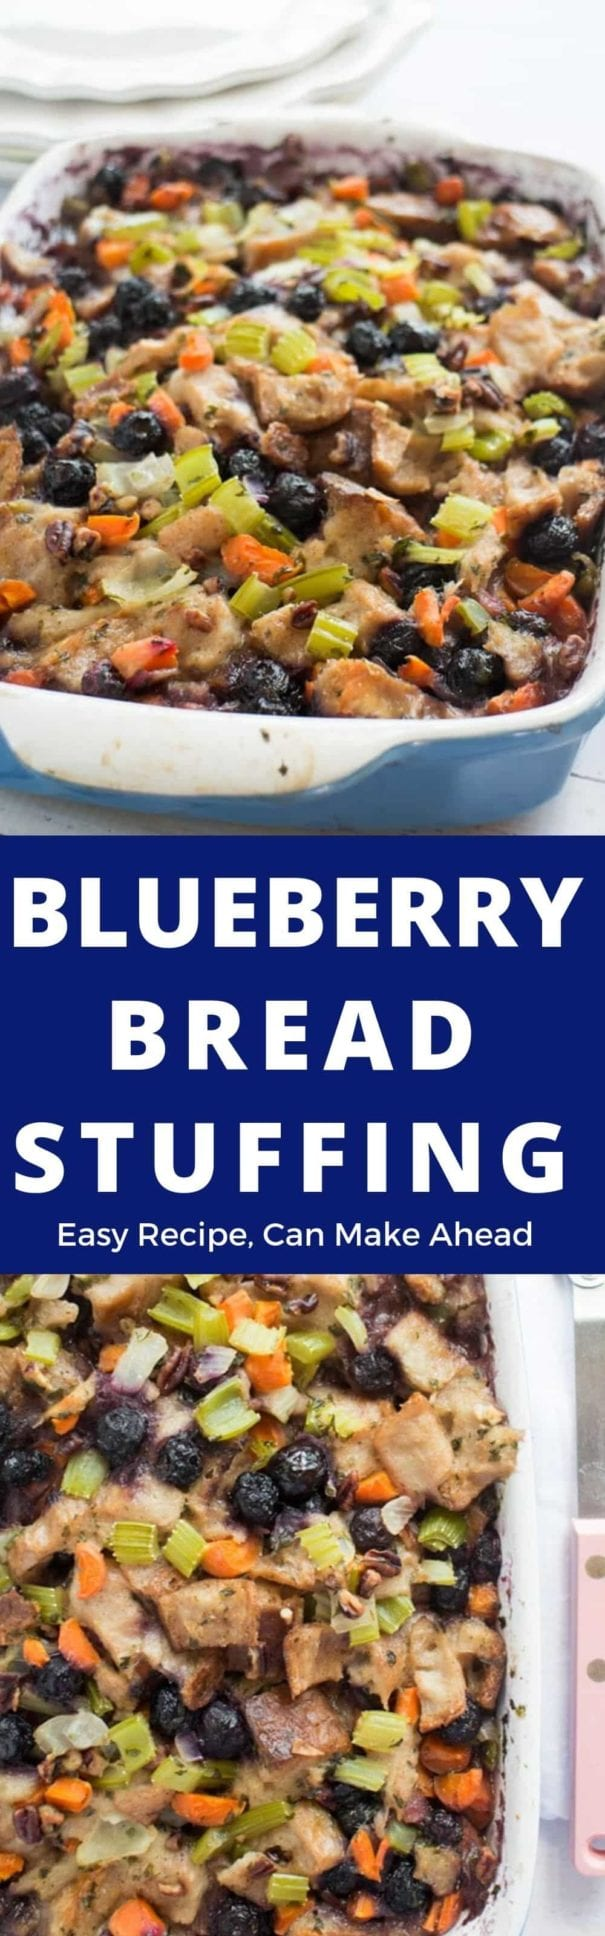 Blueberry Bread Stuffing! Traditional homemade vegetarian bread stuffing with sweet blueberries added in! This comes from a Grandma's vintage cookbook, so you know it's going to be the best! It's easy to make and you can even make it ahead of time to freeze!